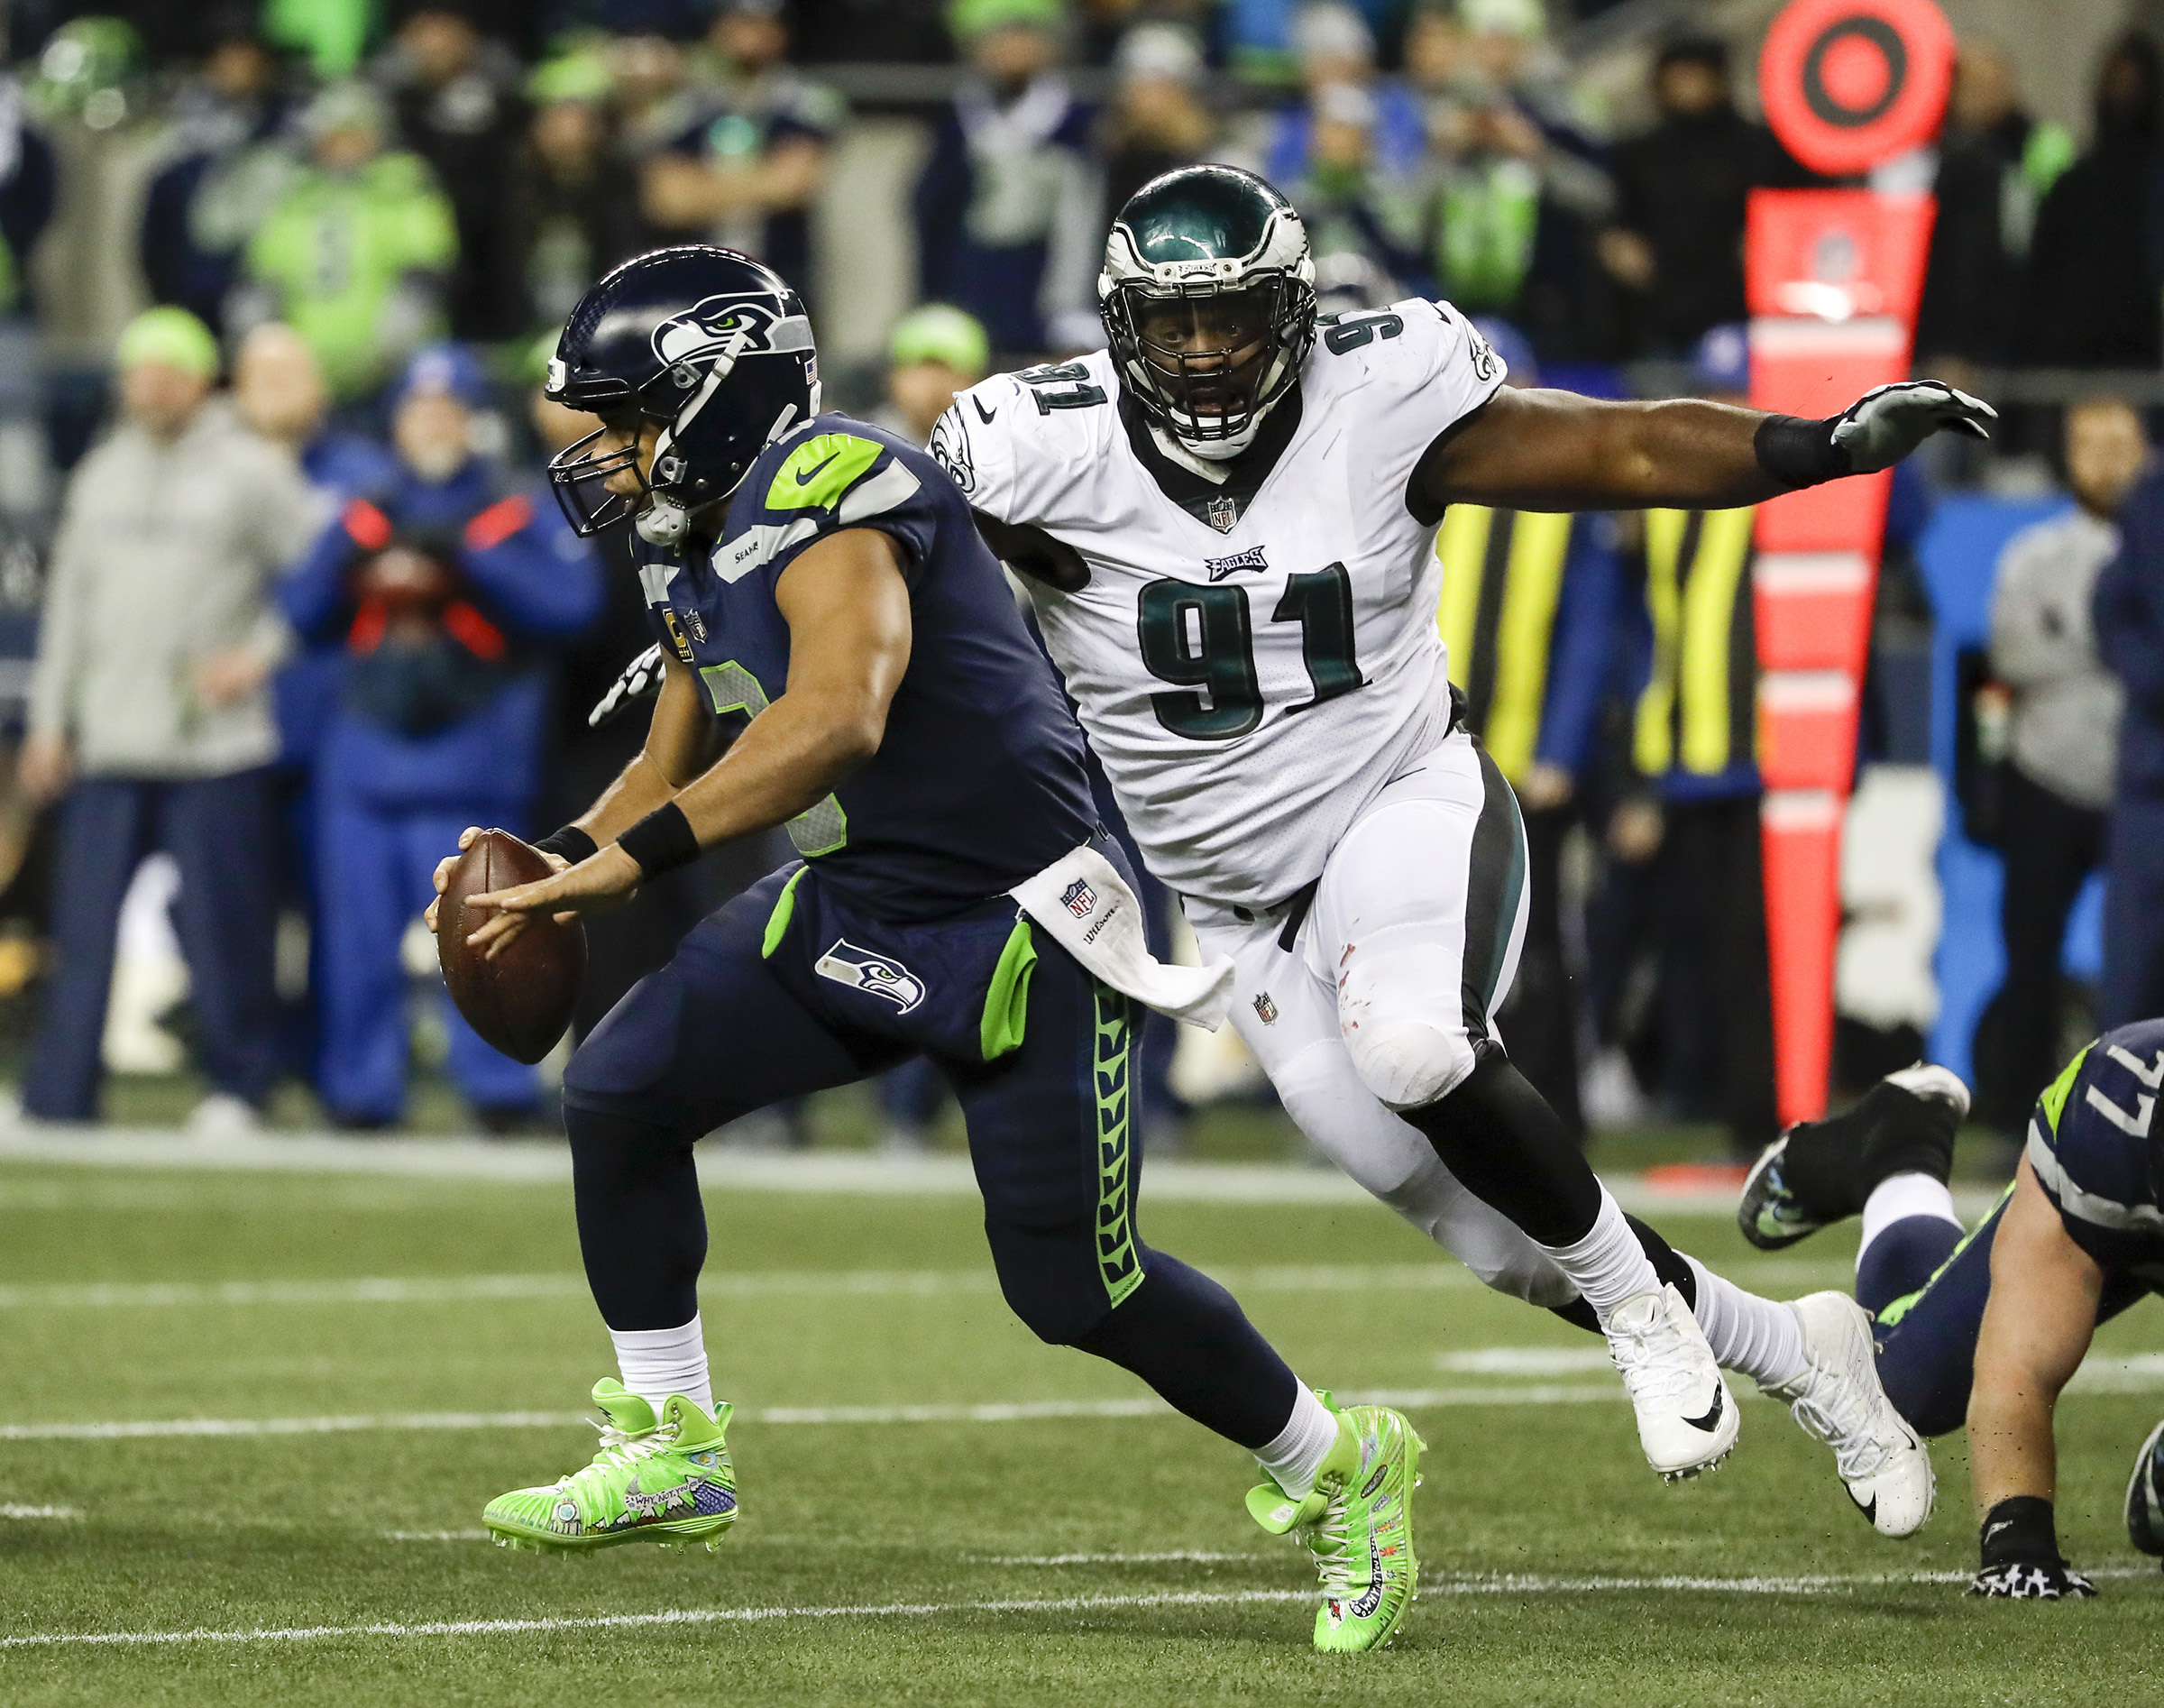 Seattle Seahawks quarterback Russell Wilson runs past Eagles defensive tackle Fletcher Cox in the fourth-quarter on Sunday, December 3, 2017 at CenturyLink Field in Seattle. YONG KIM / Staff Photographer